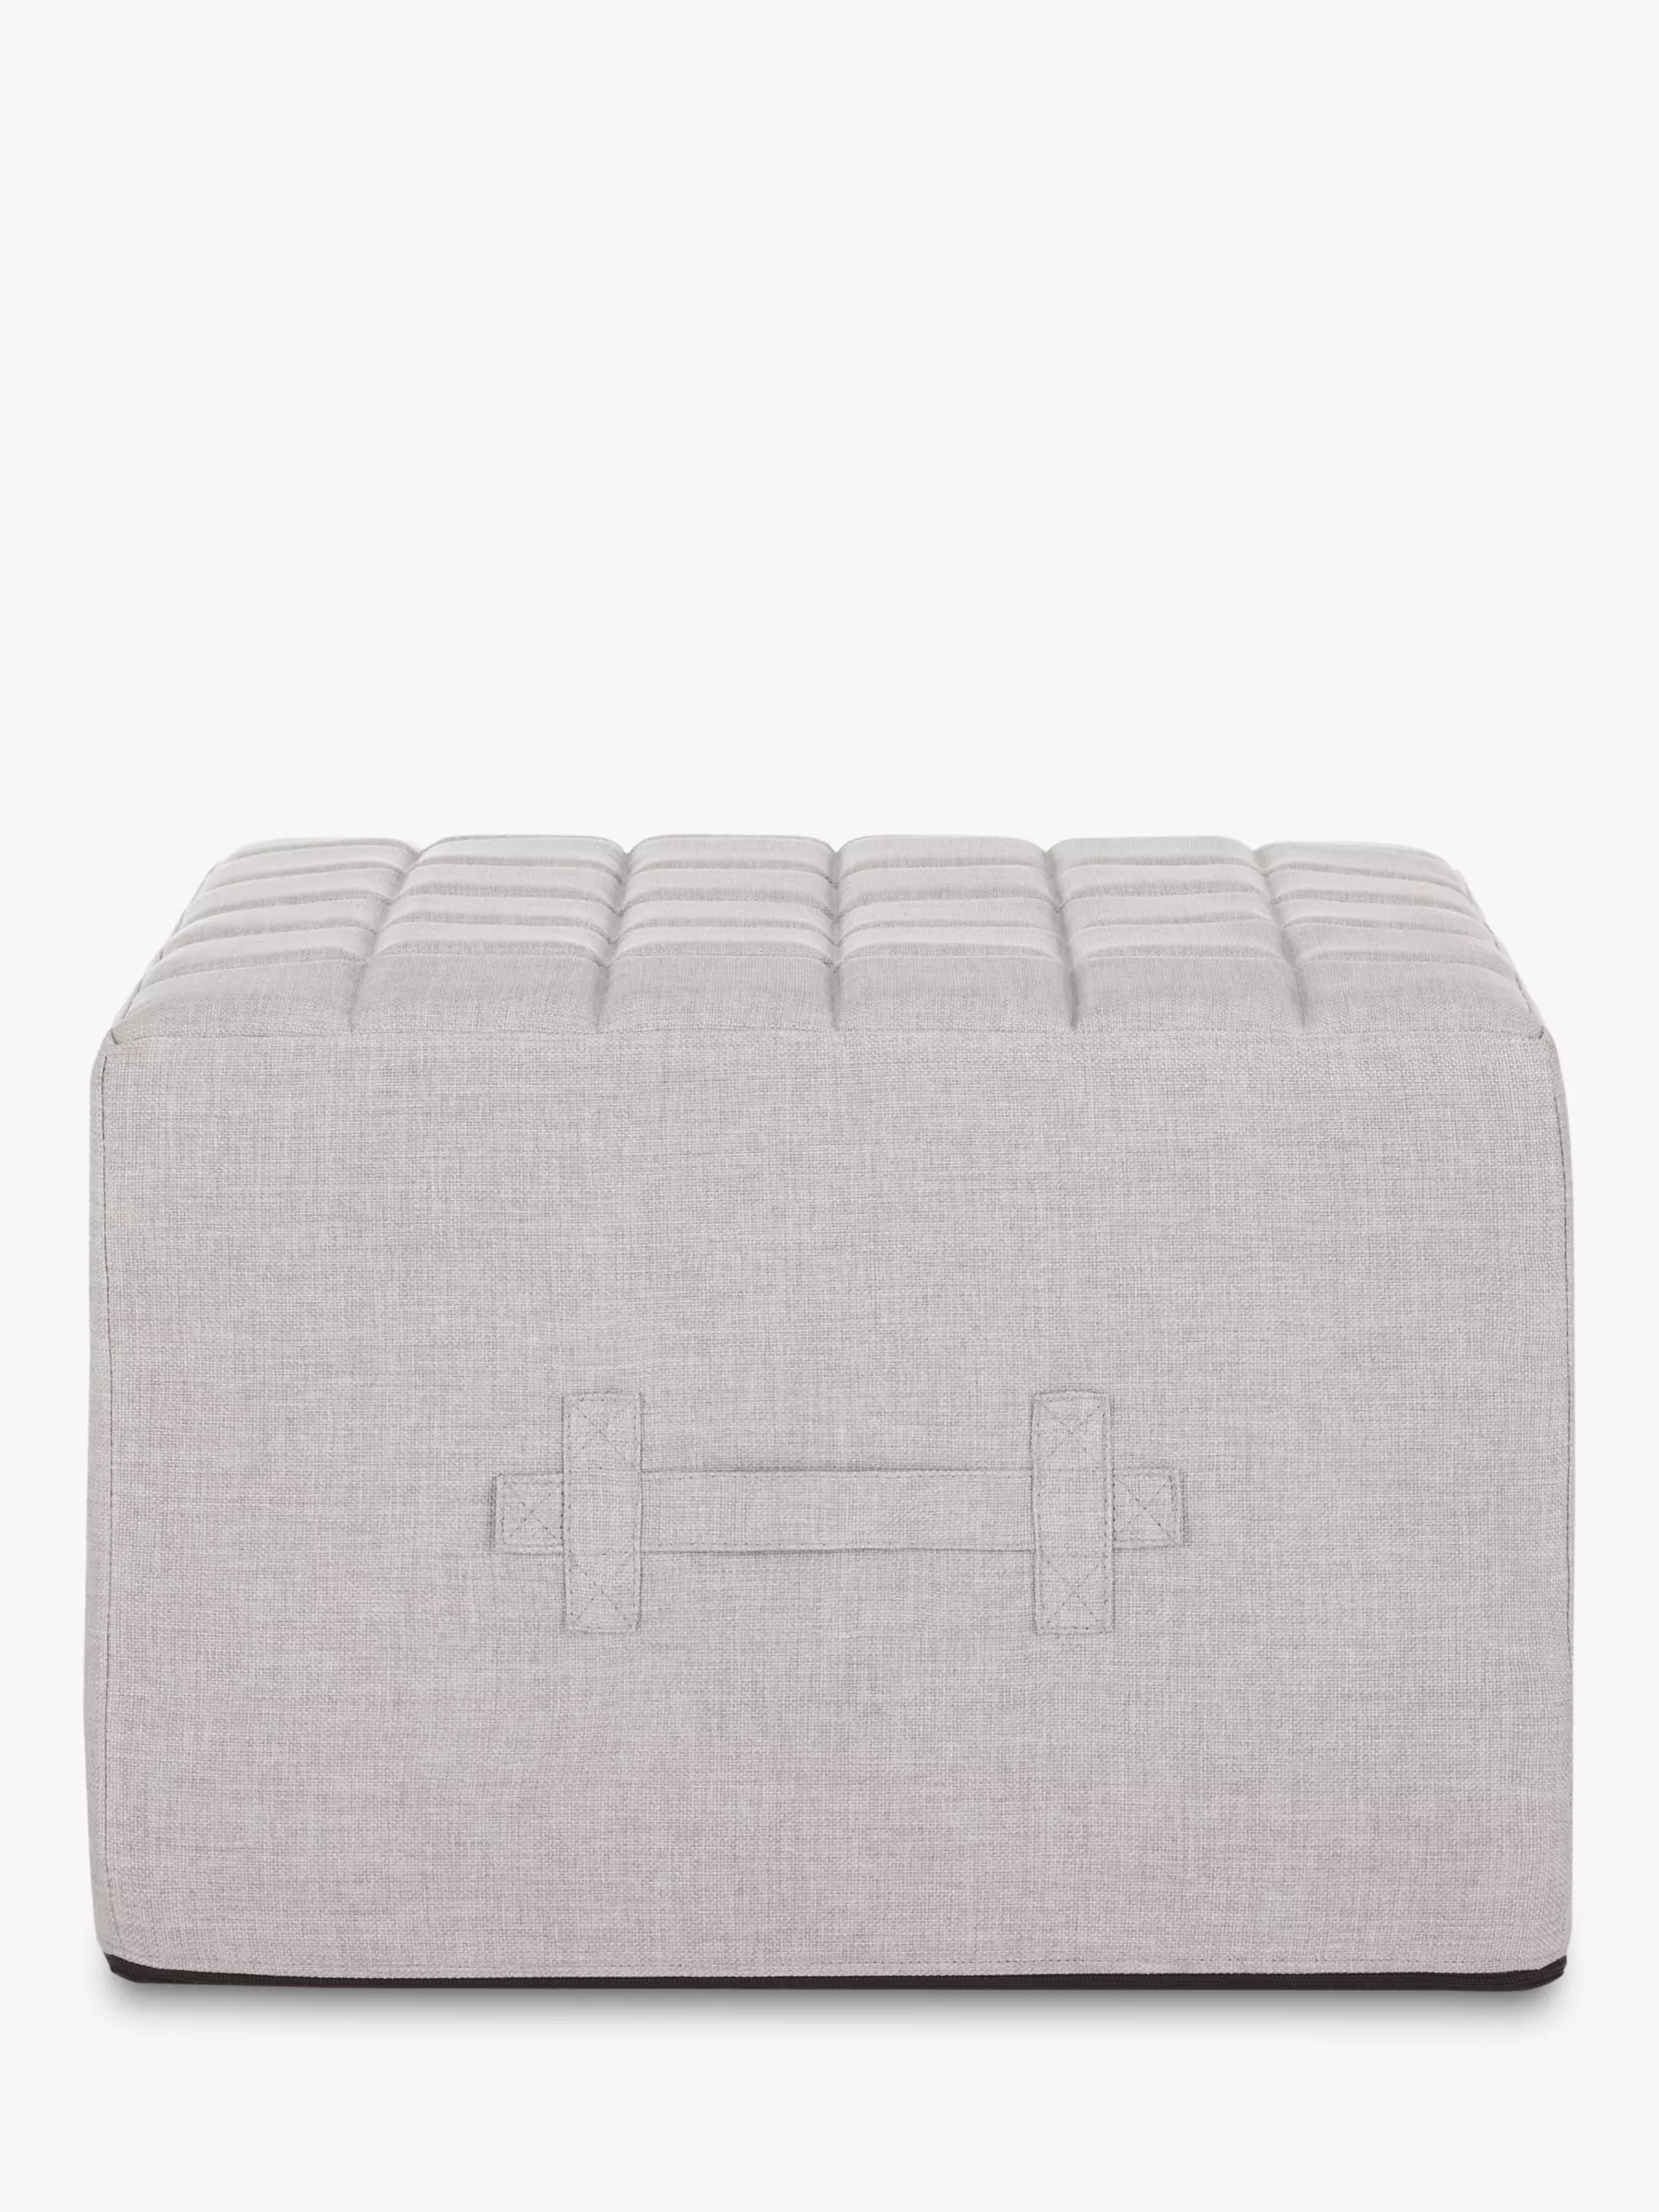 folding ottoman single sofa bed review karlstad cover 3 seater house by john lewis kix with foam mattress at buyhouse florence french grey online